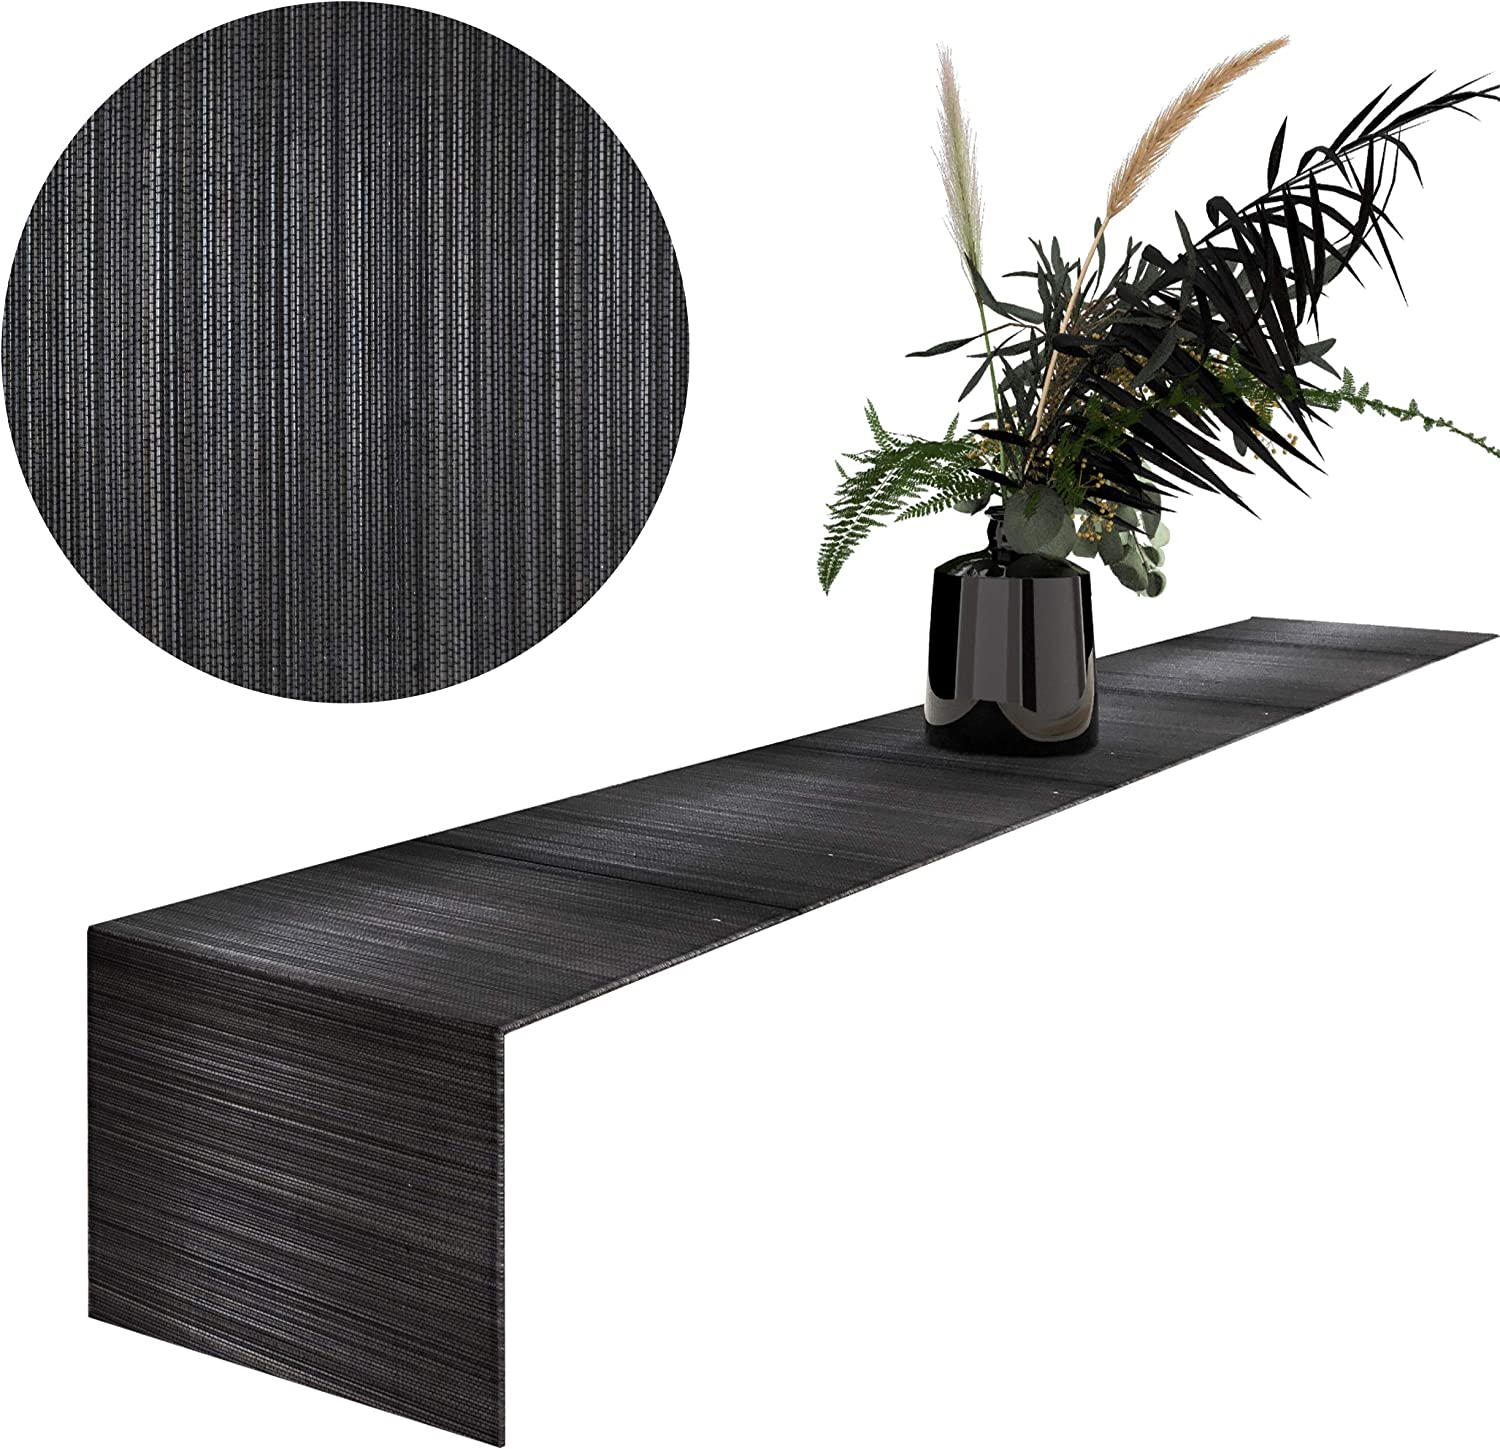 MadeTerra Bamboo Table Runner Rectangular Hand Woven Rustic Farmhouse Table Runner Decorative Table Mat for Dining Room Party Holiday Decoration (1, Black)